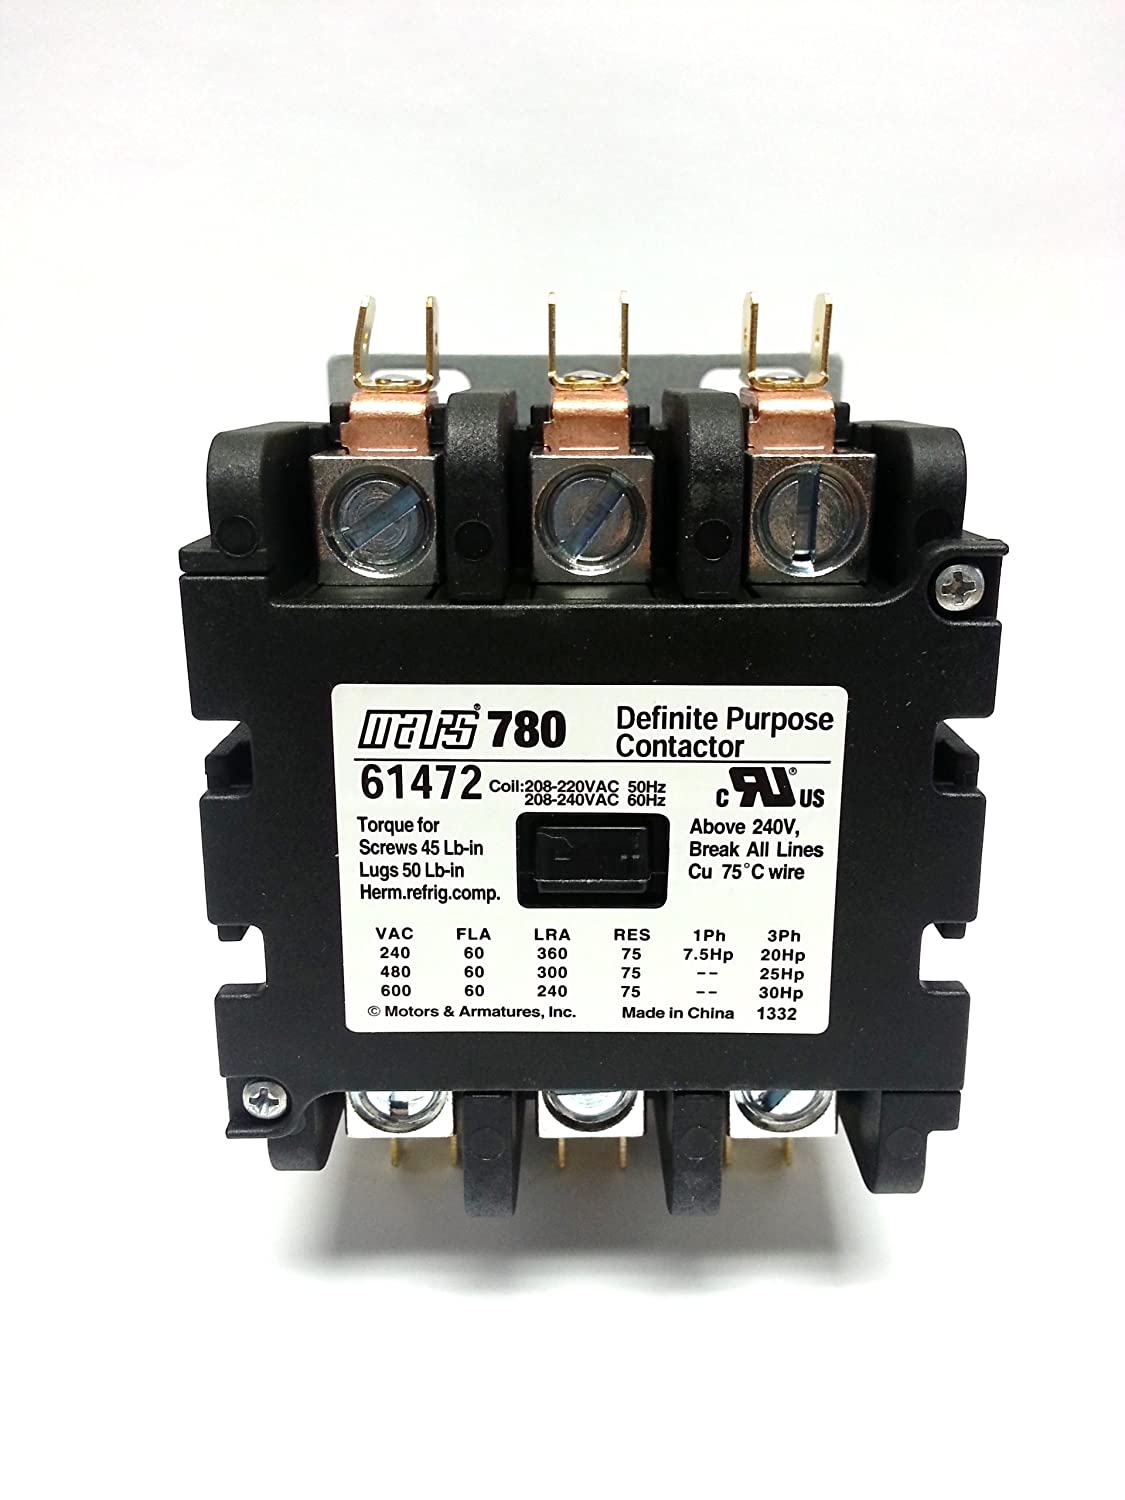 Awesome furnas contactor wiring diagram mad wiring harness mars 61320 contactor wiring diagram dolgularcom 816g3iny9tl mars 61320 contactor wiring diagram awesome furnas contactor wiring diagram swarovskicordoba Images